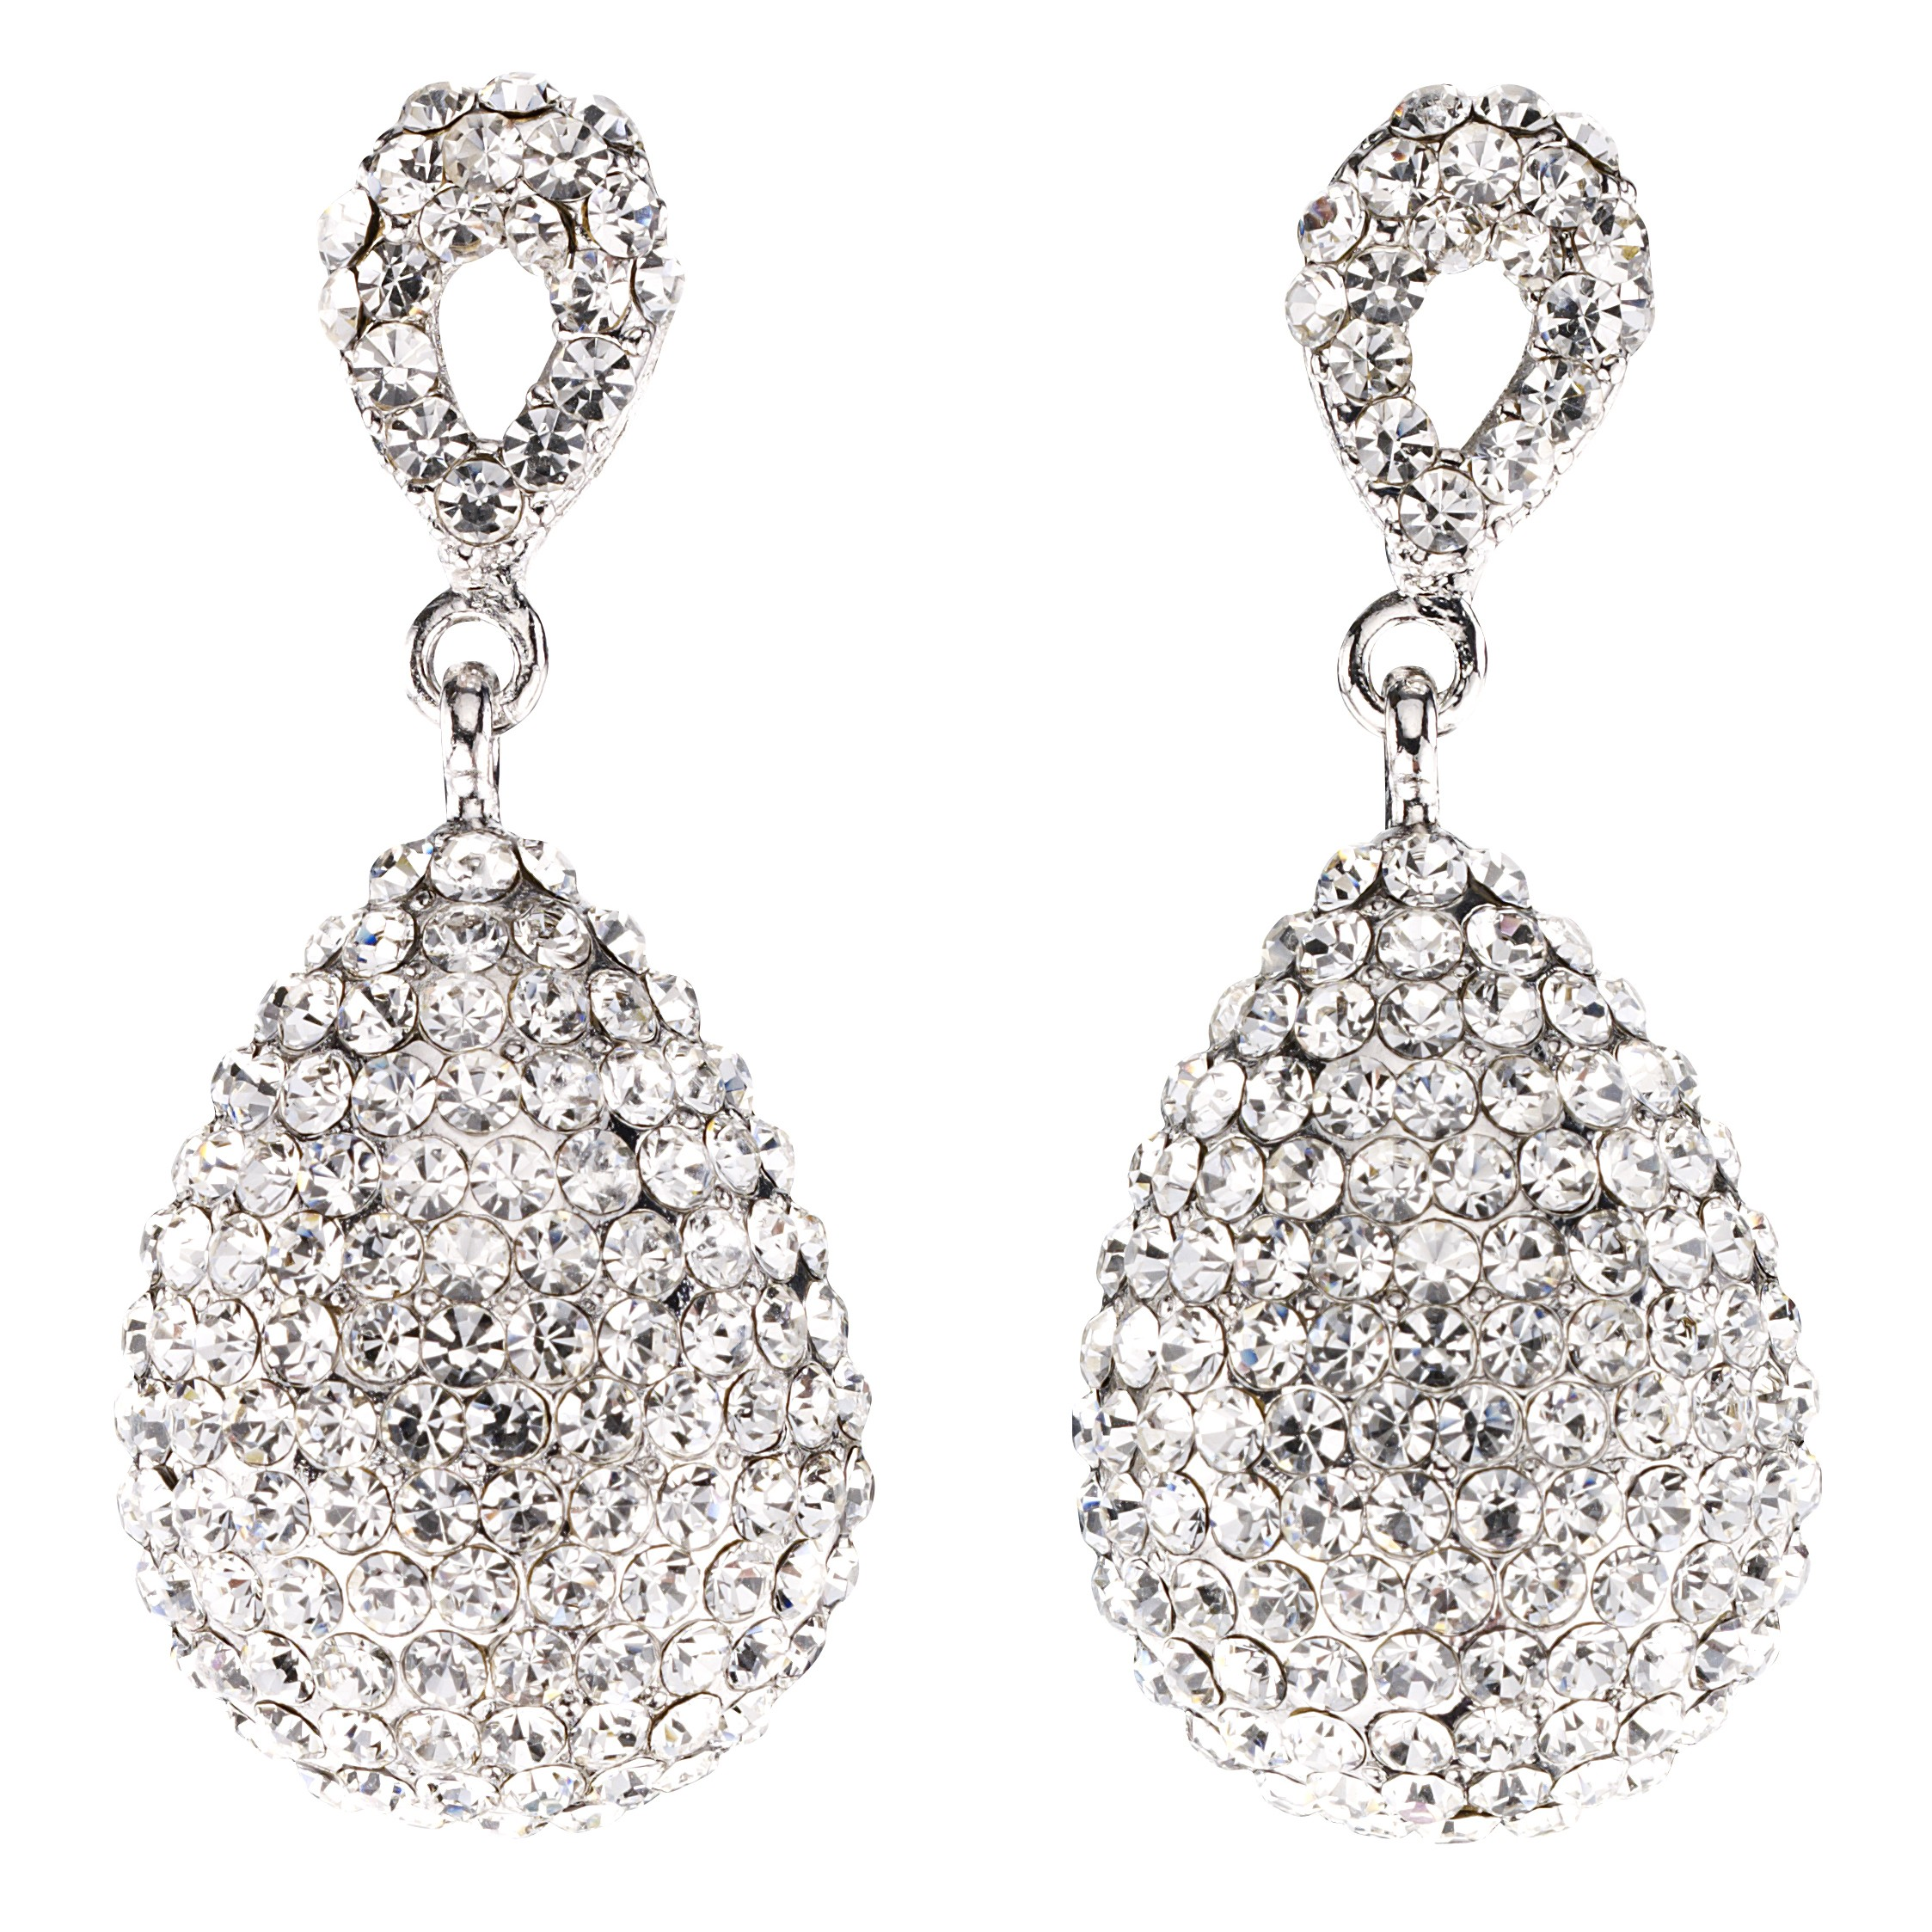 crystal qudo treats jewellery earrings image from uk tondo deluxe white